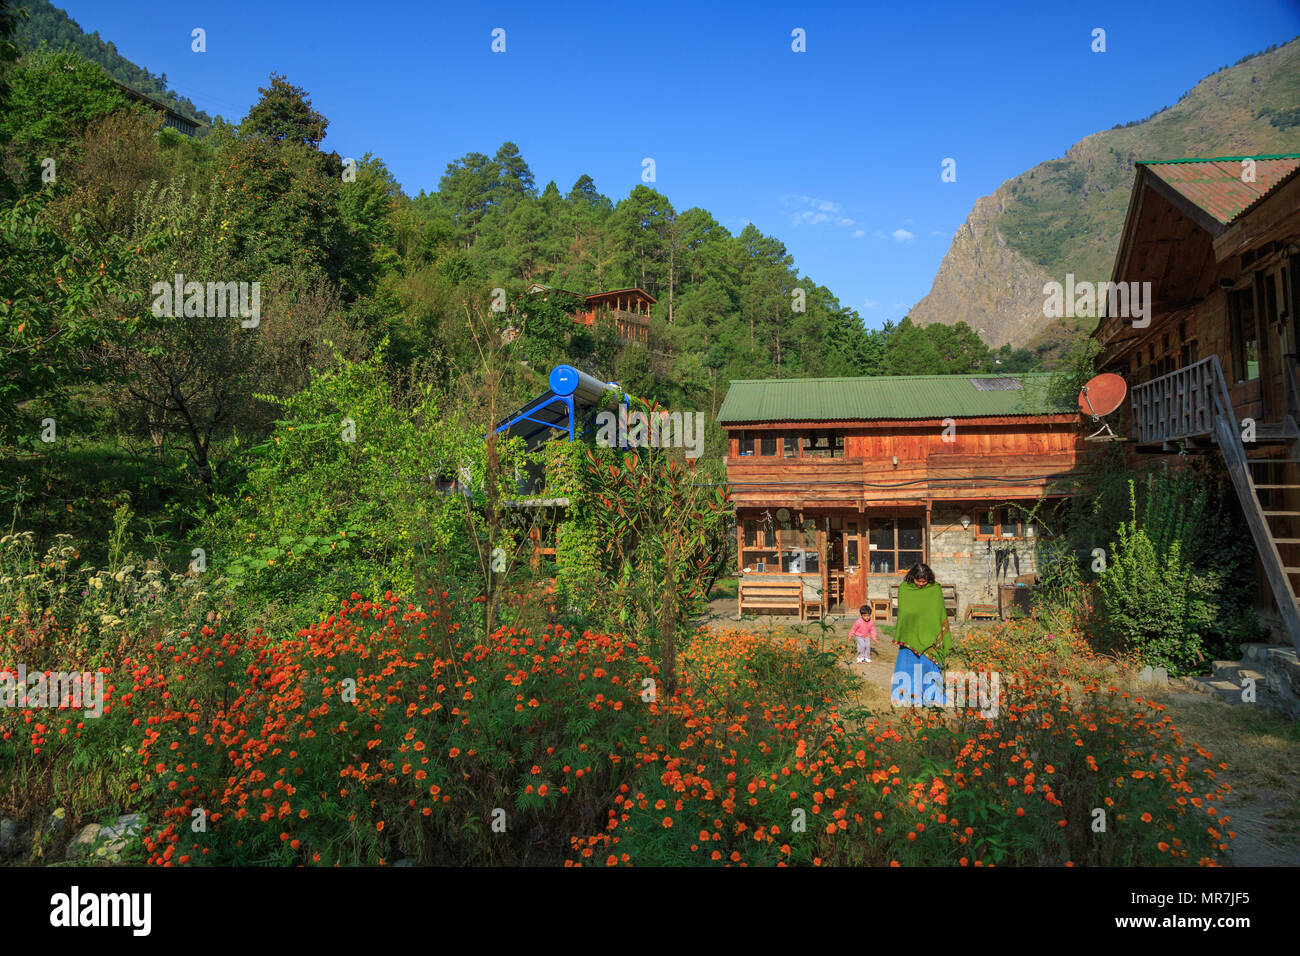 Raju's Cottage - a beautiful homestay in Tirthan Valley (Himachal Pradesh, India) - Stock Image